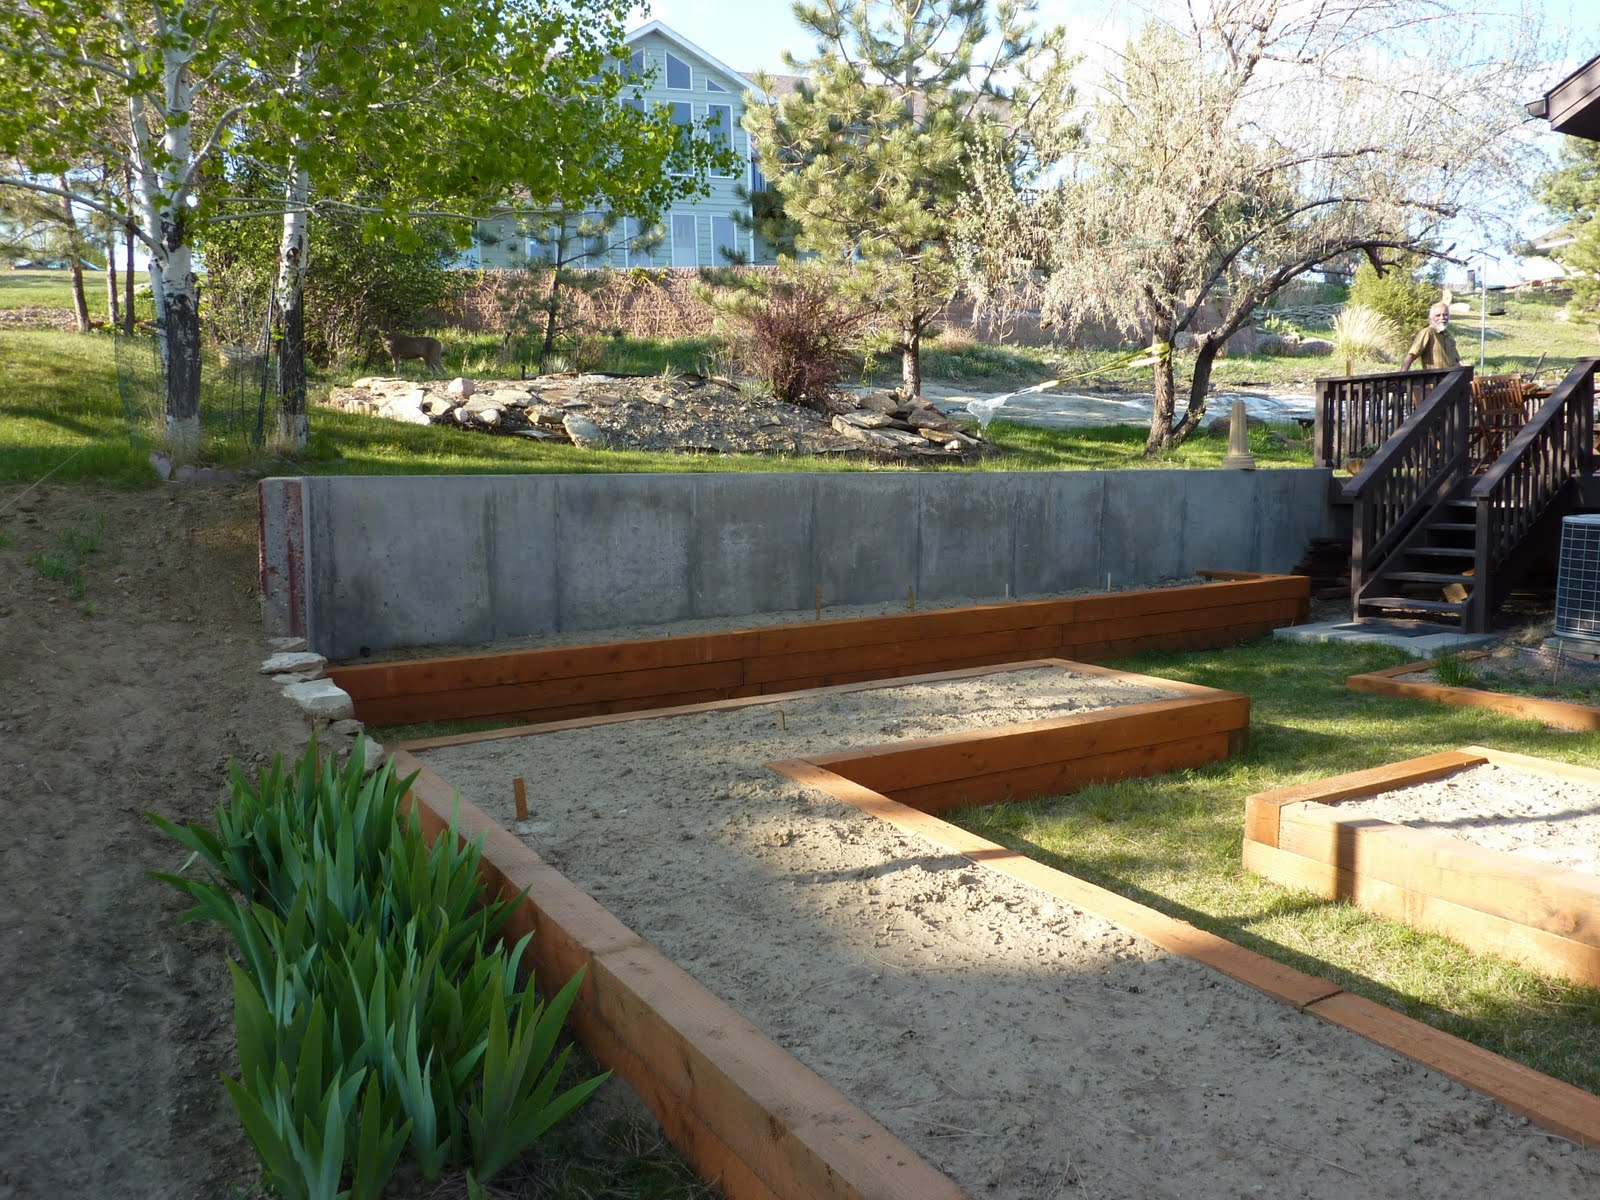 Backyard Garden Beds :  from a High Plains Garden RAISED BEDS FOR EFFICIENT BACKYARD GARDENS